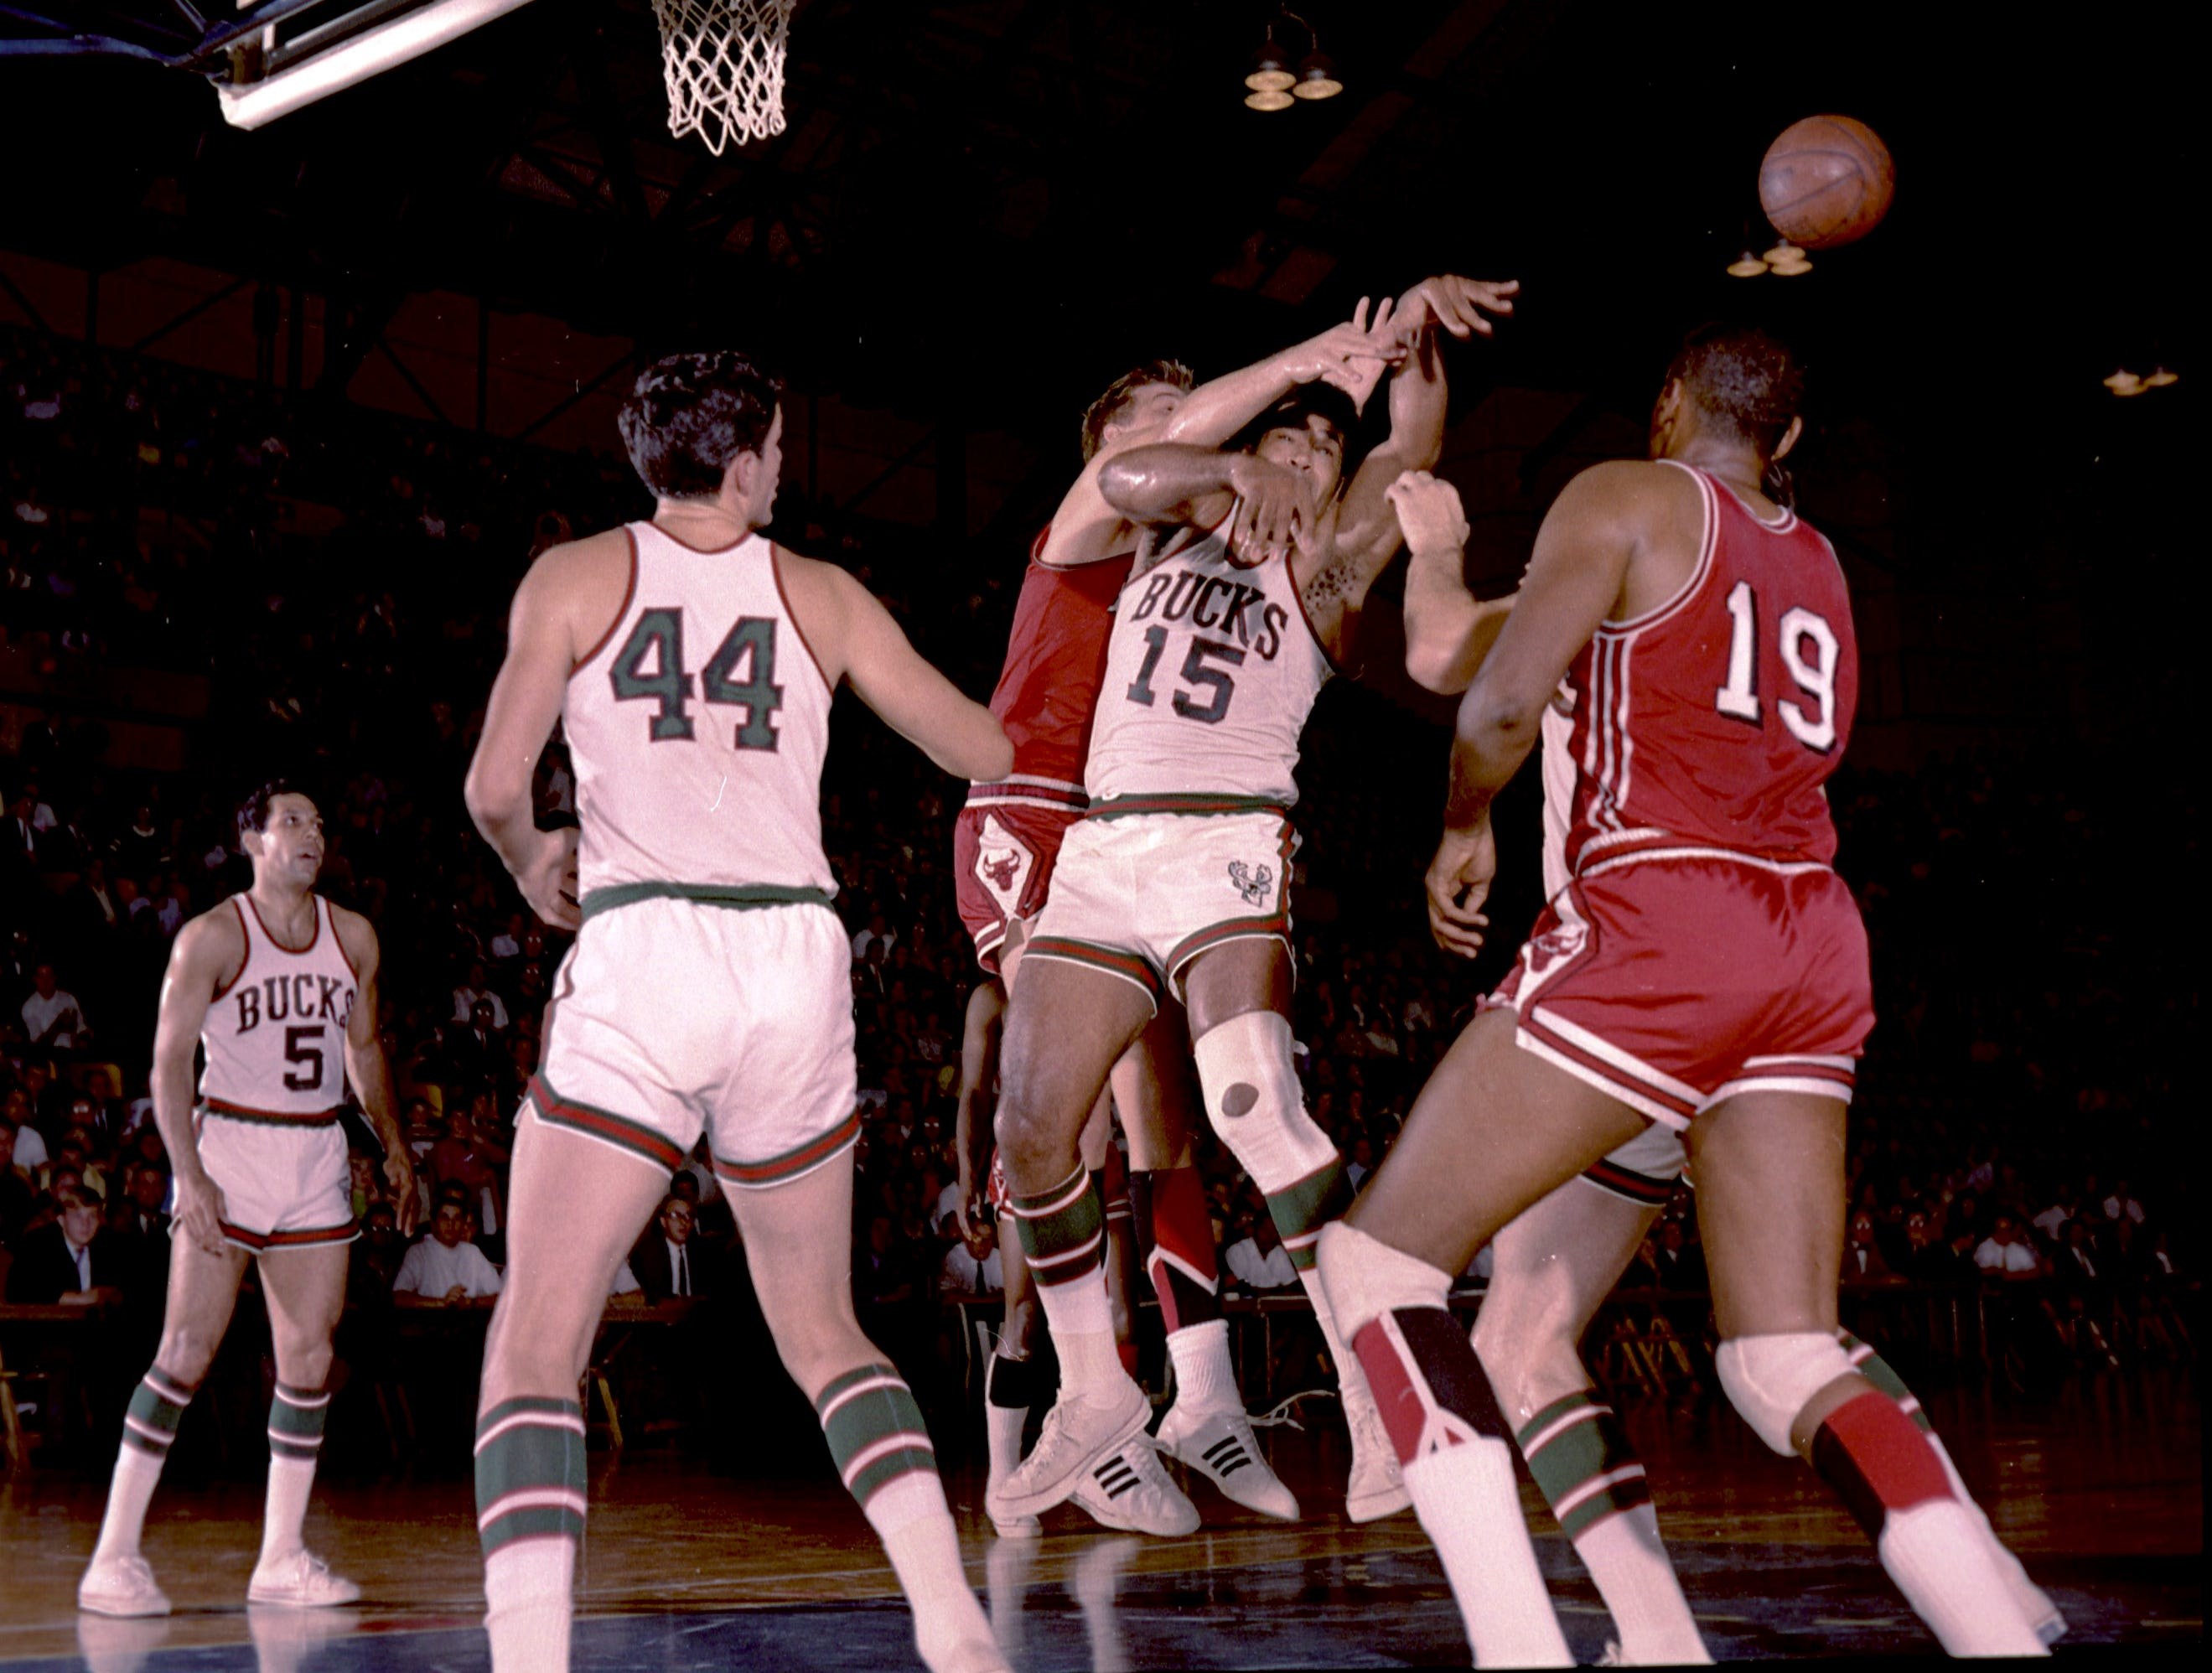 Bucks center Wayne Embry (15) tussles under the basket for the ball during Milwaukee's first regular-season game in the NBA on Oct. 16, 1968, against the Chicago Bulls at the Milwaukee Arena. Looking on are Bucks guards Guy Rodgers (5) and Jon McGlocklin (14), and Bulls forward Bob Boozer (19). The Bucks lost, 89-84.